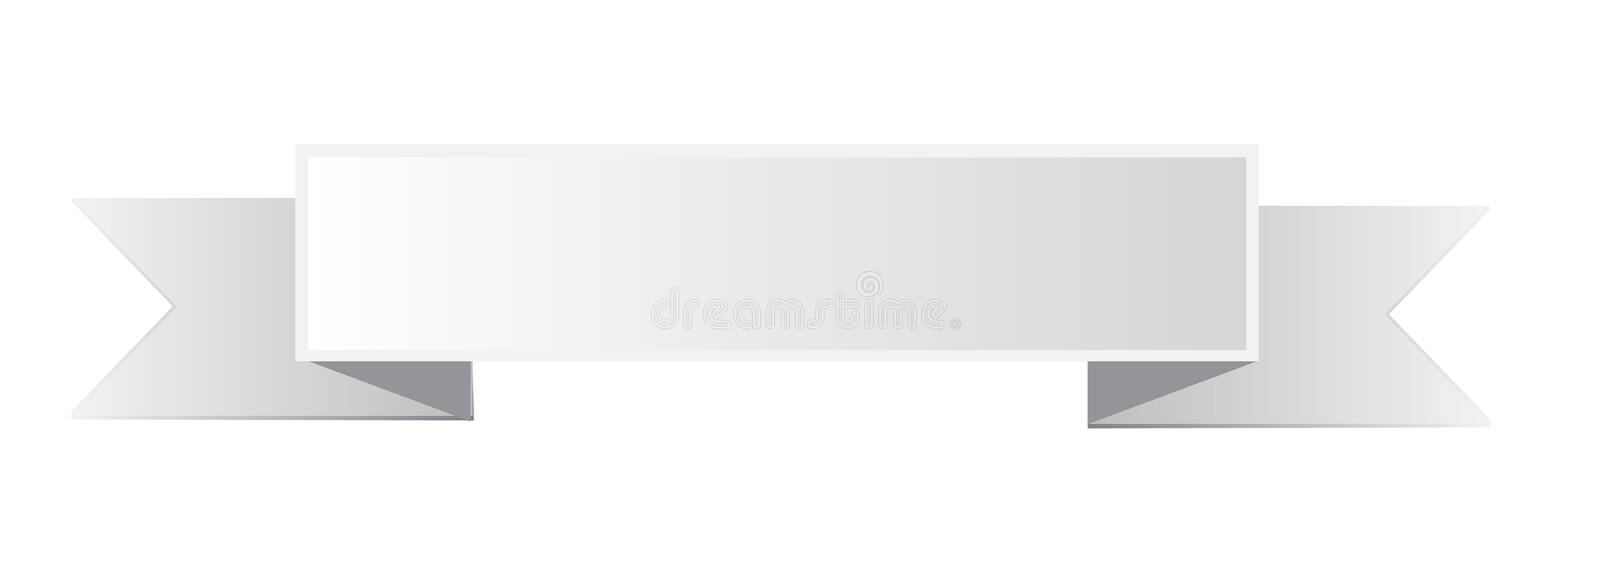 White ribbon banner icon on white background. royalty free stock photography